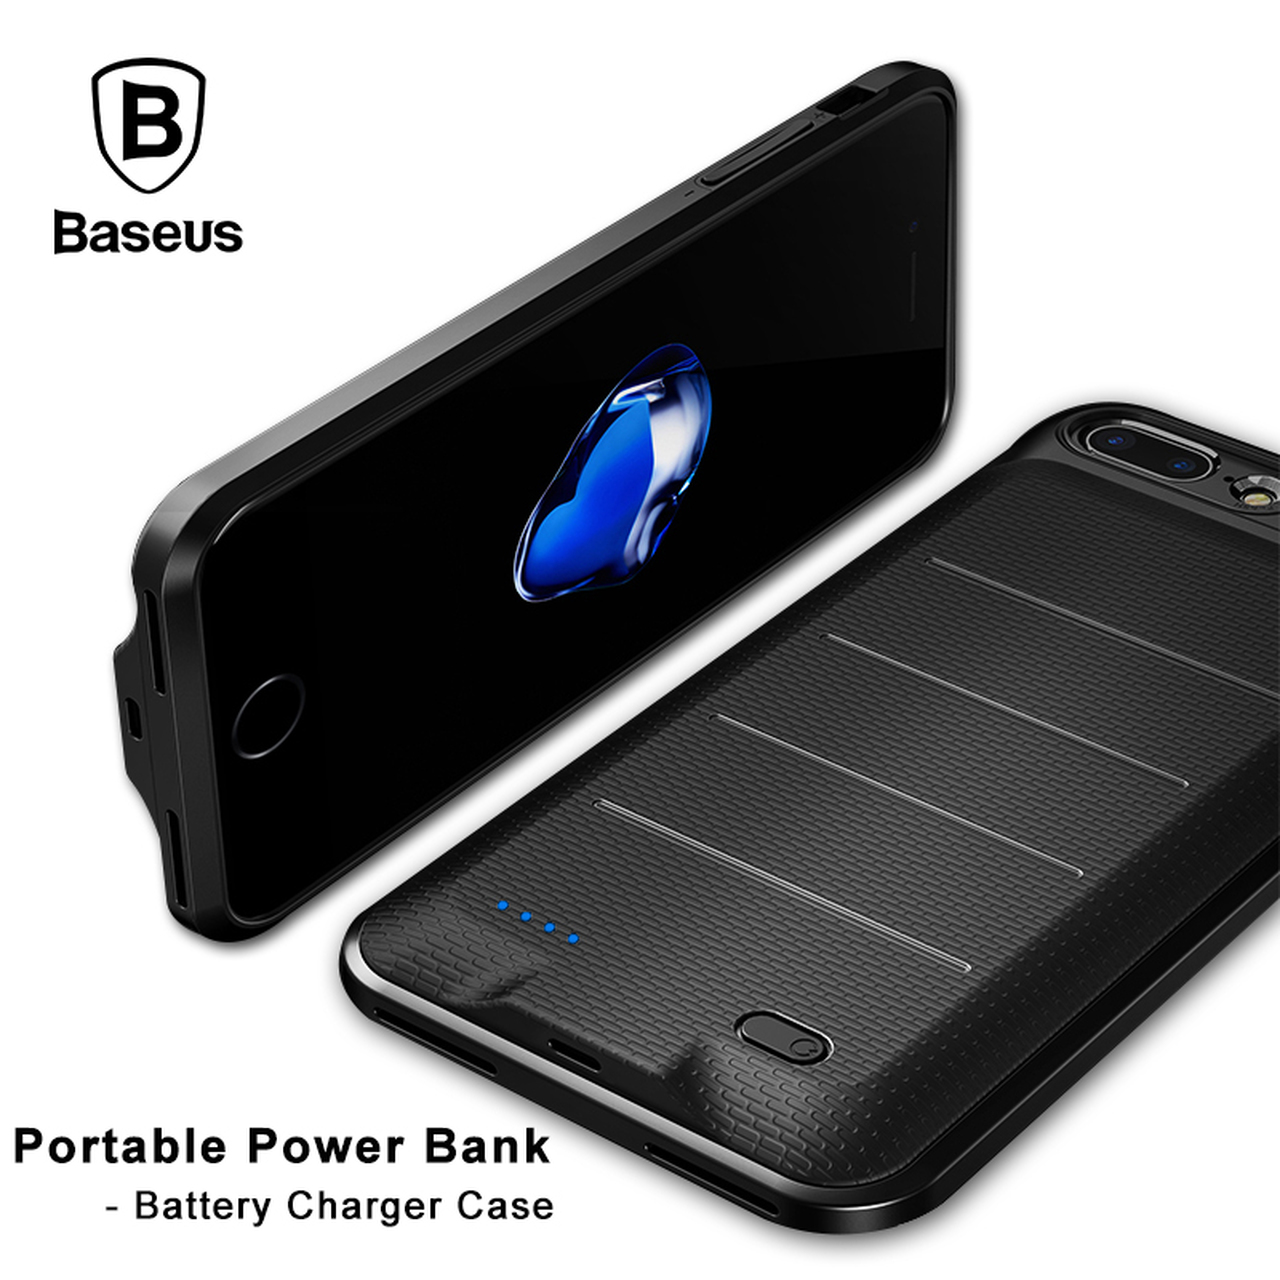 buy online 72847 7862e Baseus Battery Charger Case For iPhone 6 6s 7 Plus 2500/3650mAh Portable  External Battery Backup Power bank Case for iPhone 7